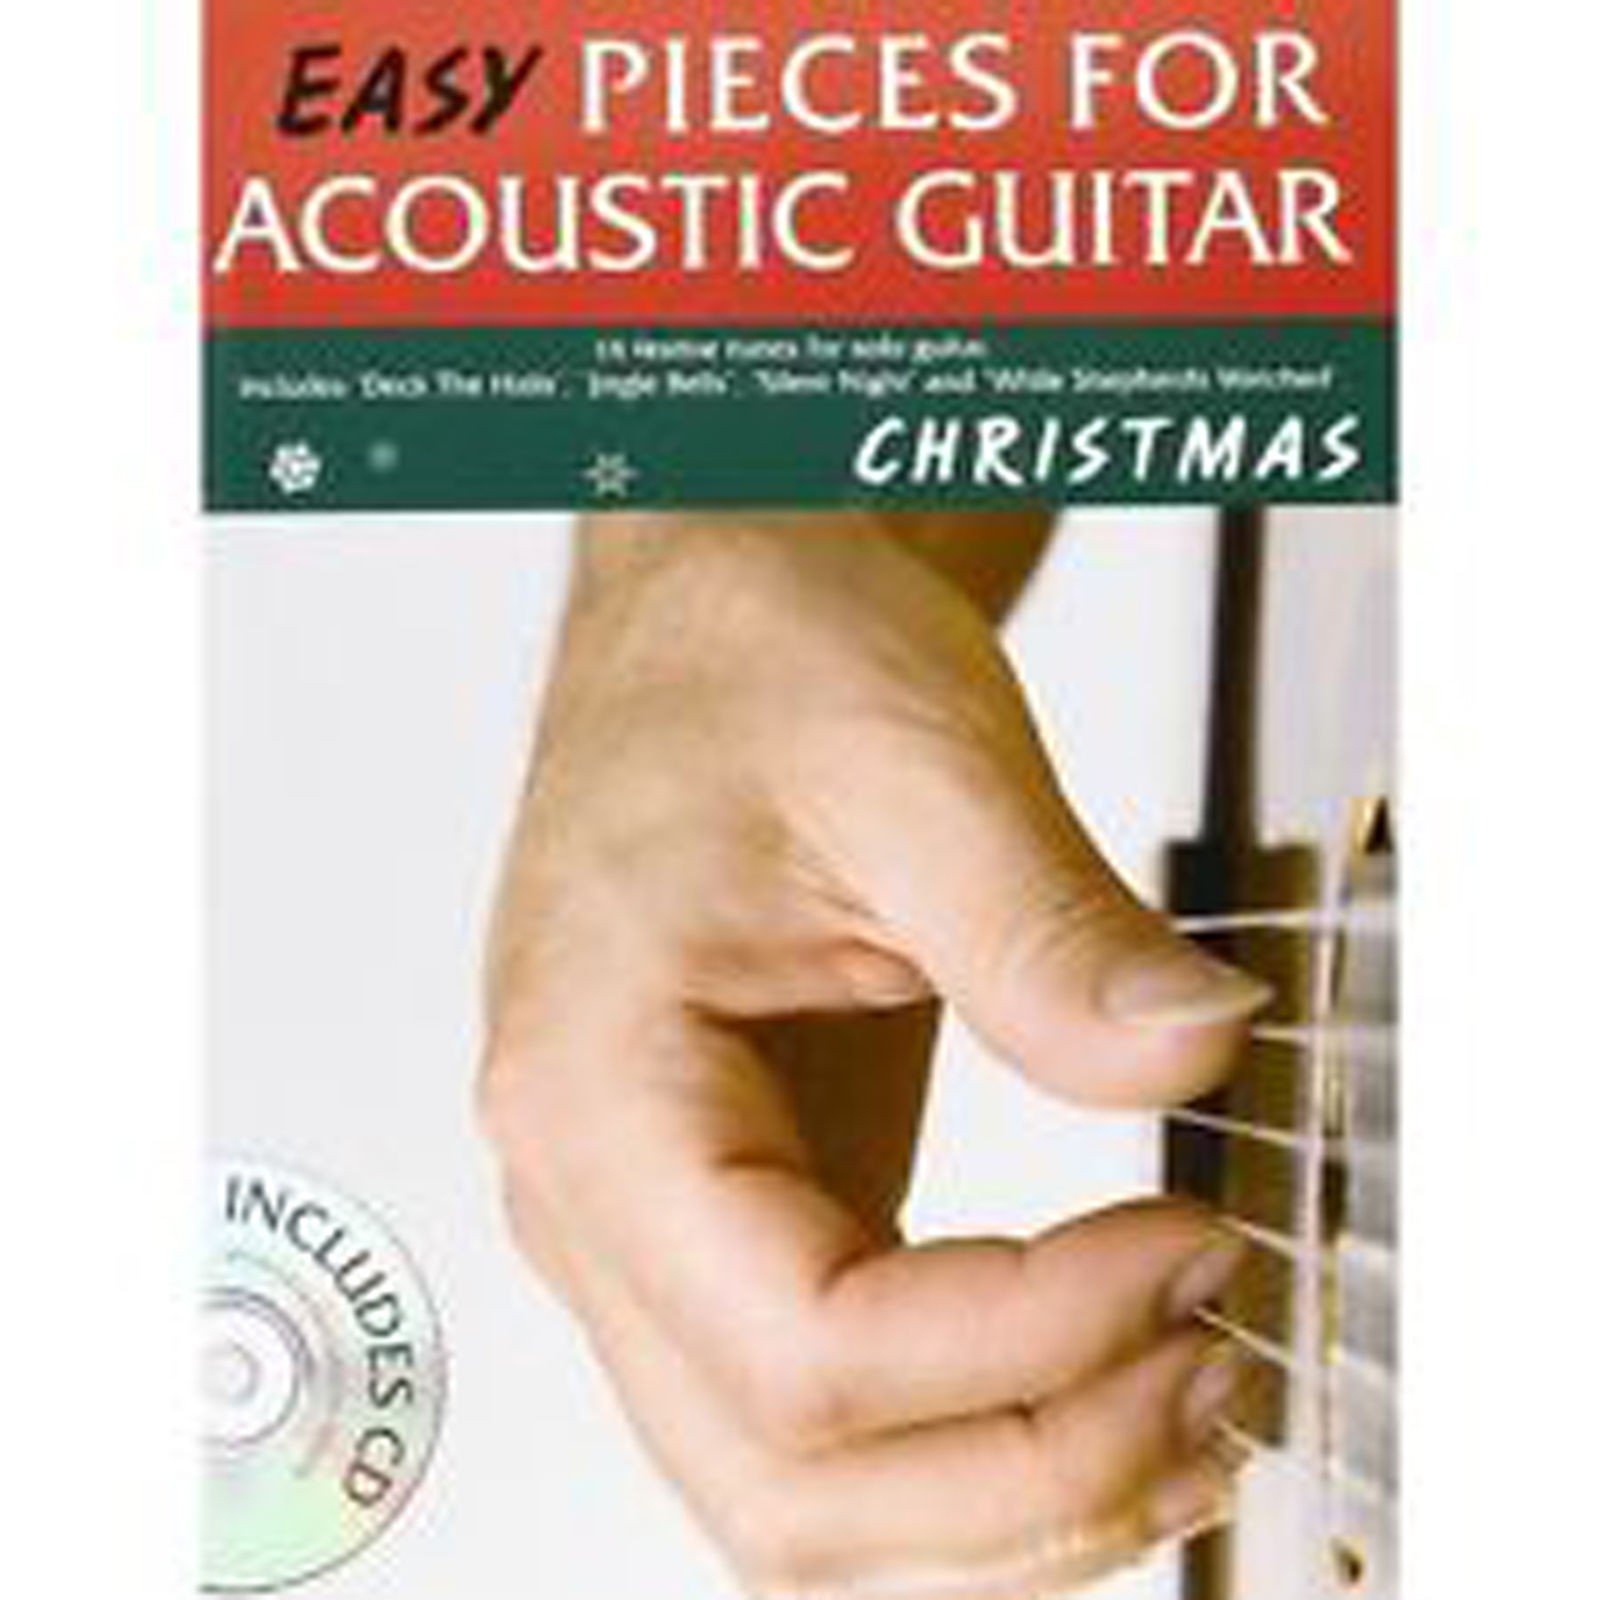 Easy Pieces for Acoustic Guitar Christmas Festive Tunes Carols Tab Book CD B51